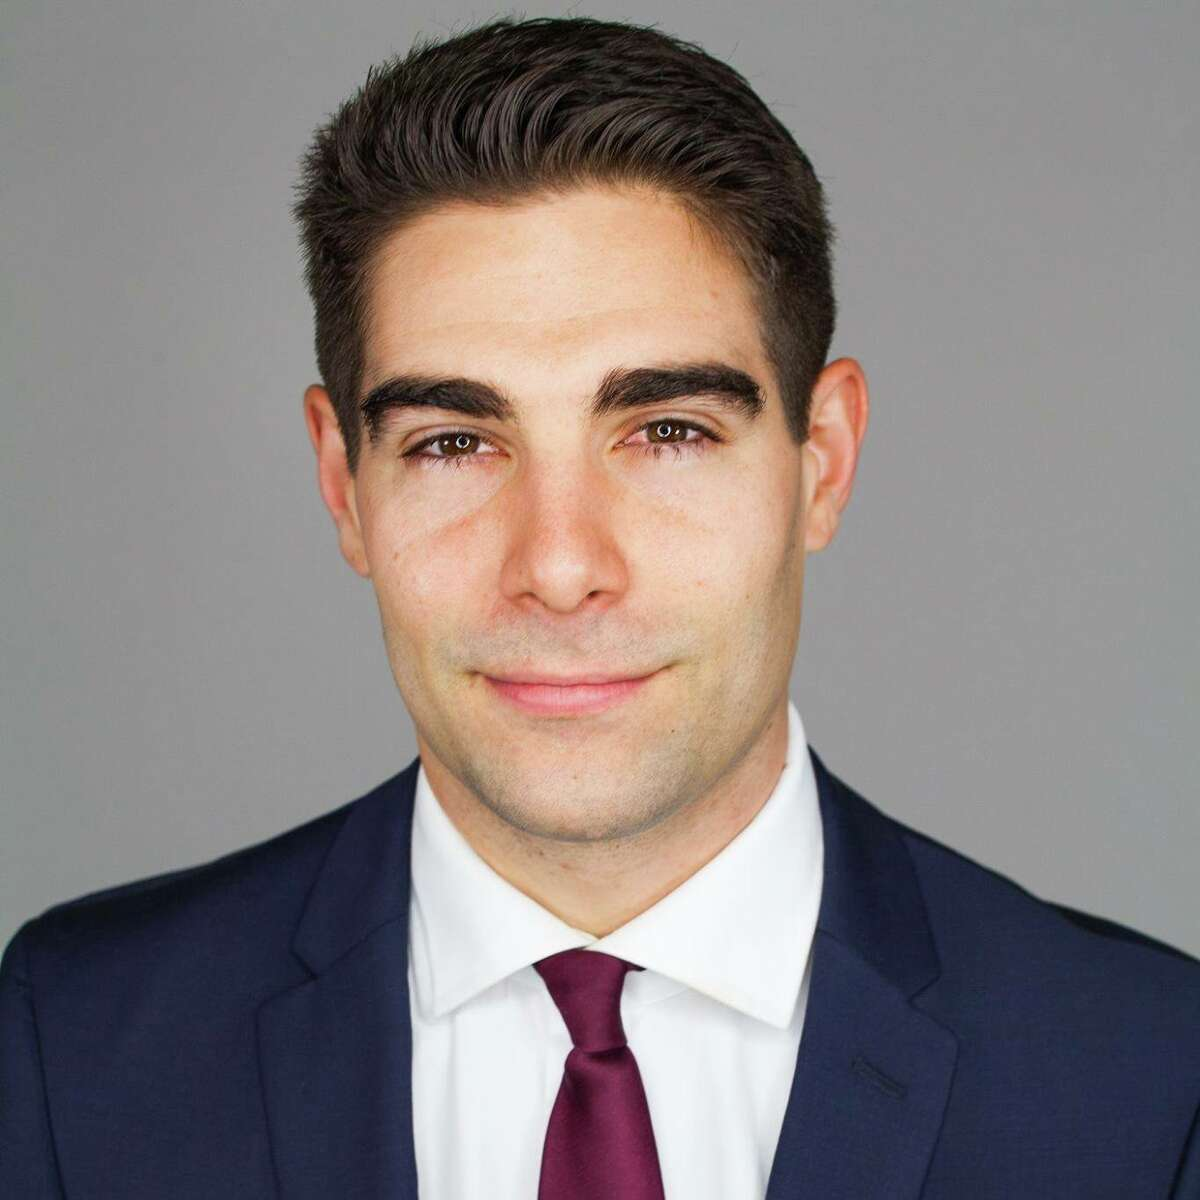 >>> 2019: Houston TV anchors and reporters on the move ... Vincent Crivelli  January 2019  Vincent Crivelli joined KPRC Channel 2 from a South Florida TV station.RELATED: Meet Houston's newest TV reporter: KPRC's Vincent Crivelli